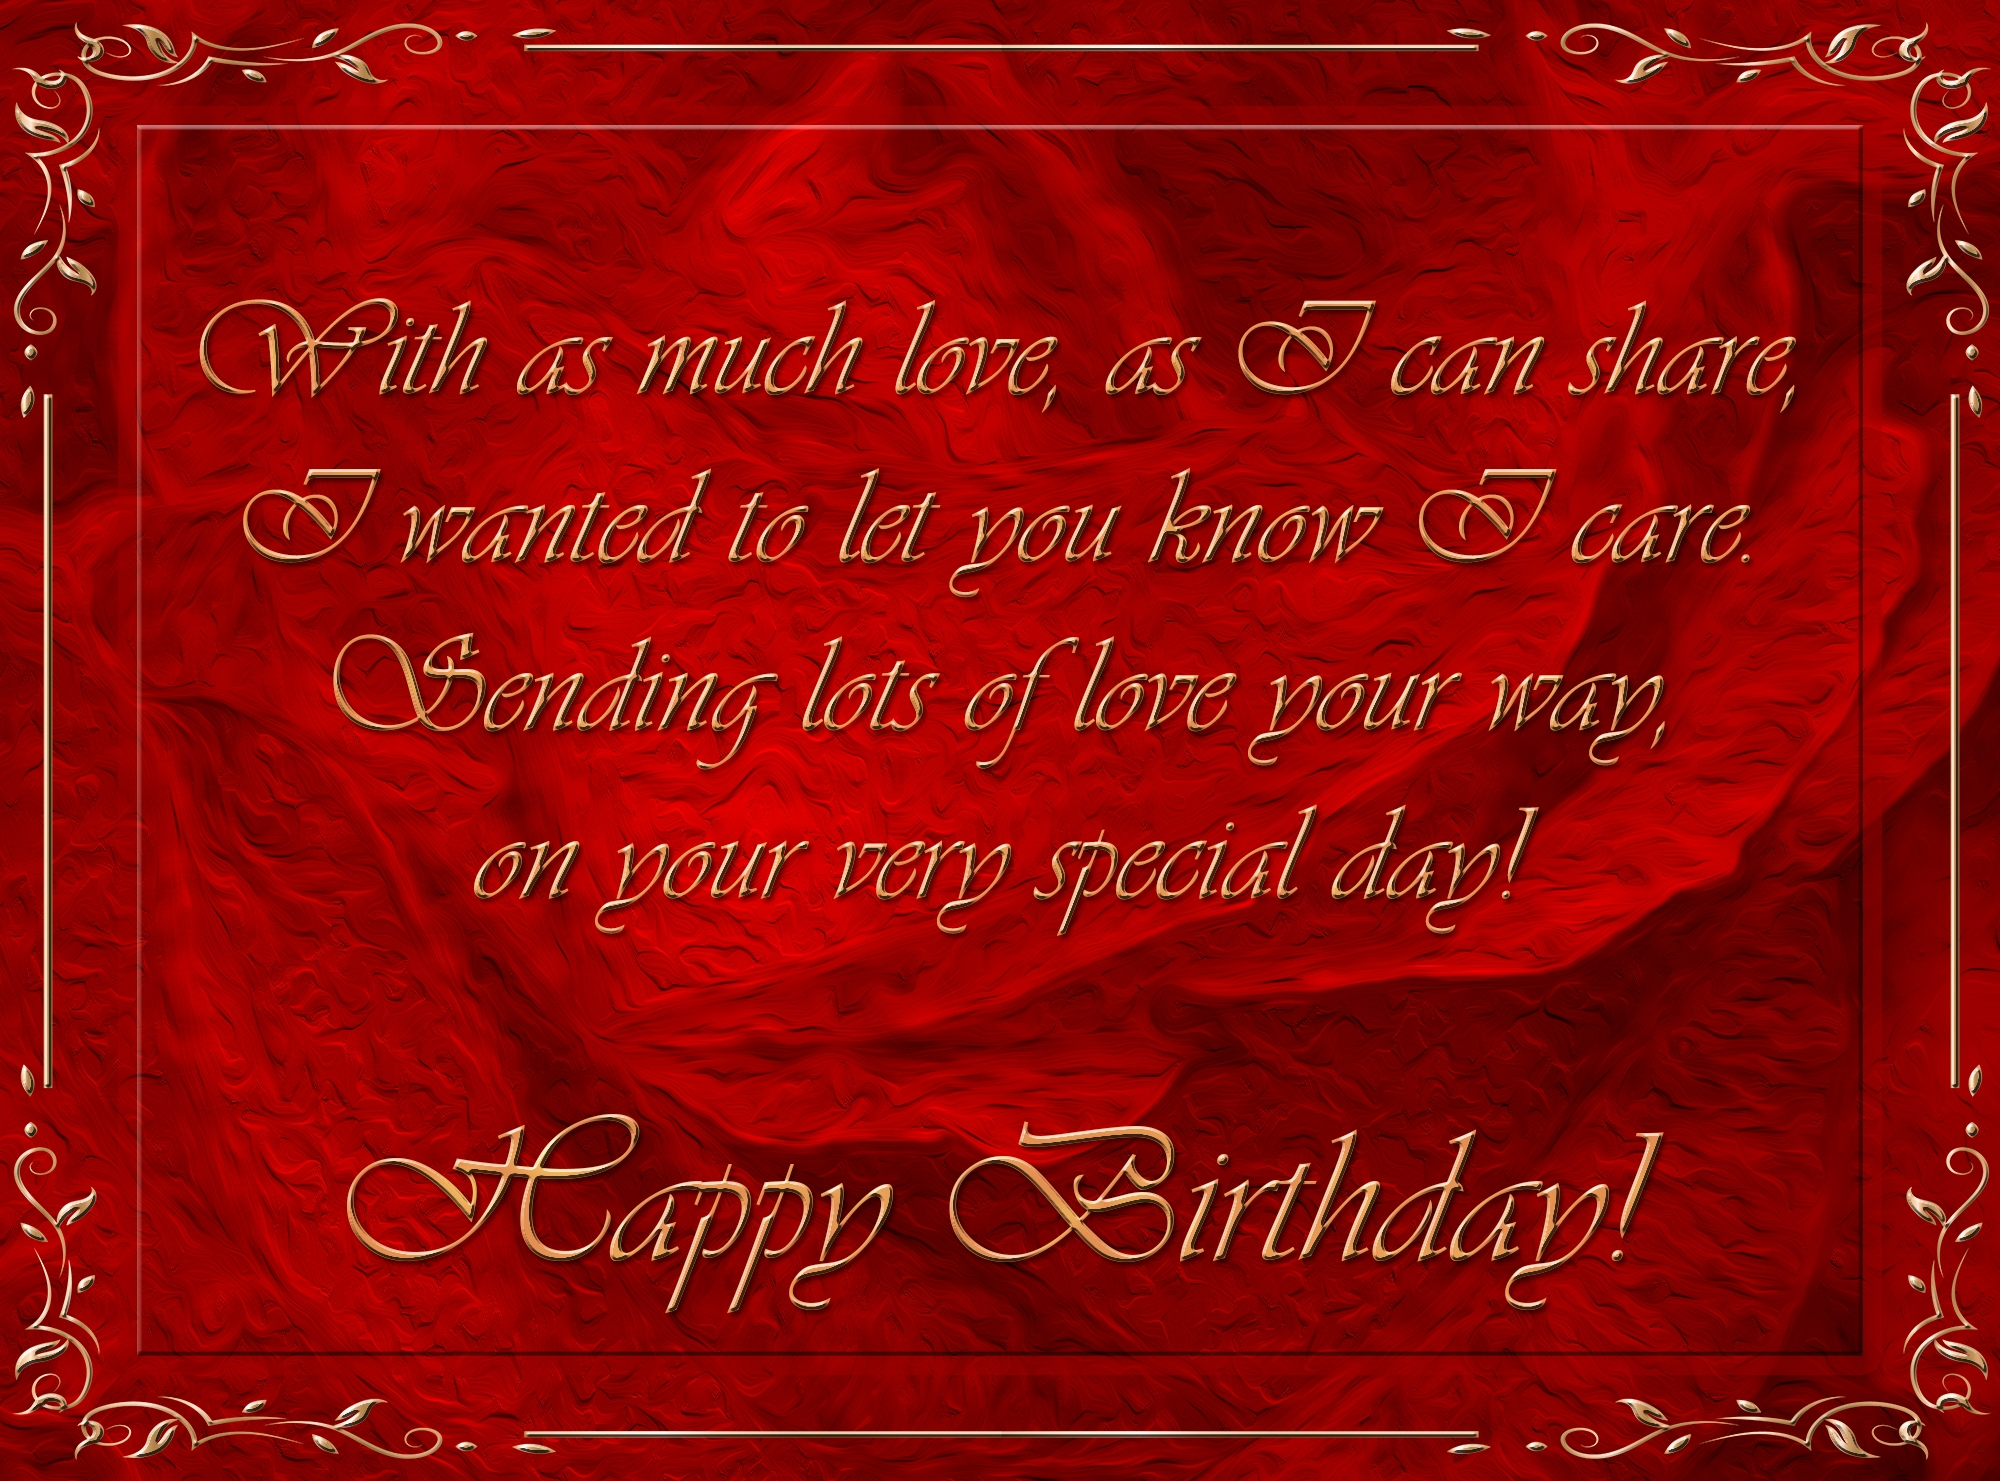 birthday card for lover free download ; free-download-birthday-cards-for-lover-unique-happy-birthday-red-greeting-card-of-free-download-birthday-cards-for-lover